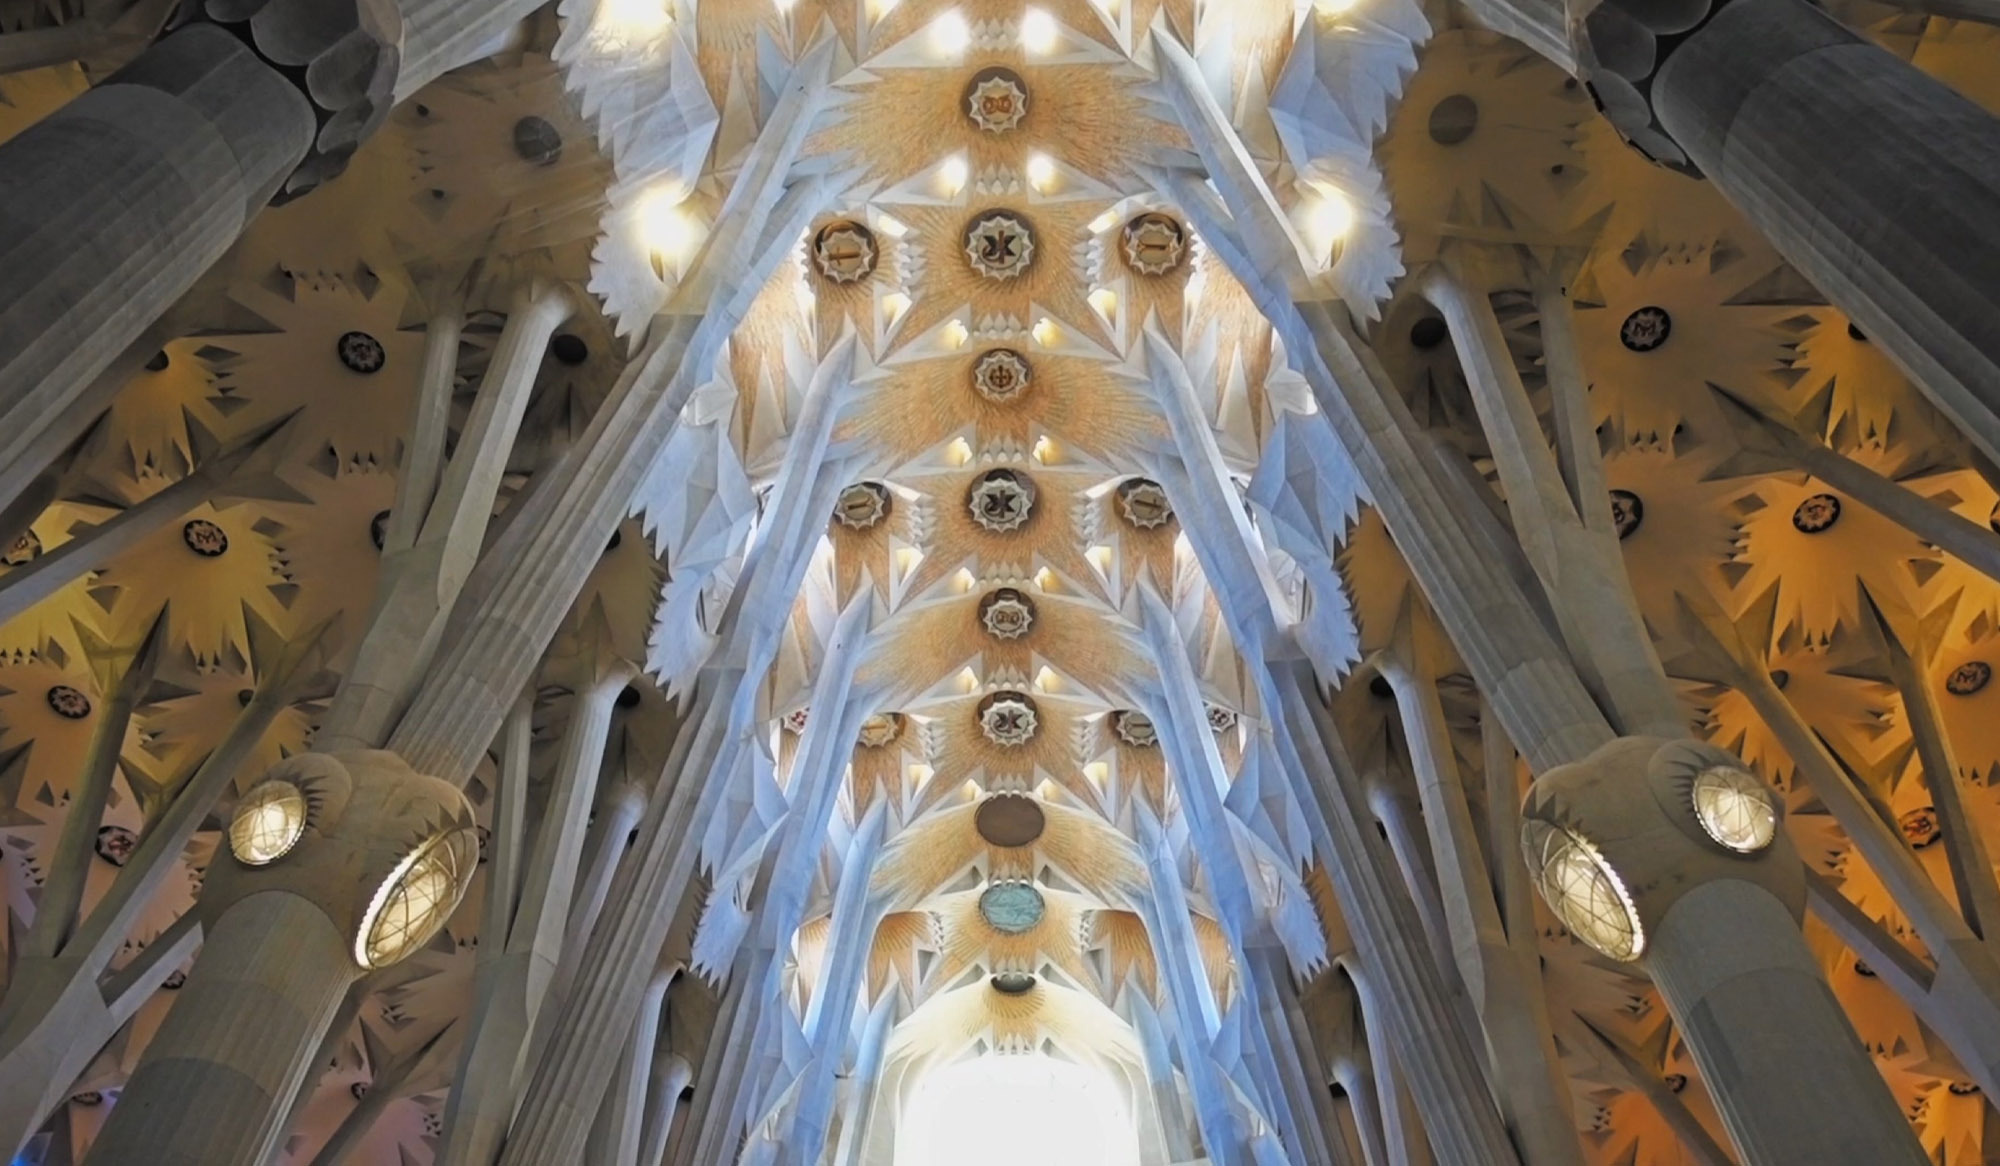 The Japanese Sculptor Who Dedicated His Life to Finishing Gaudí's Magnum Opus, the Sagrada Família